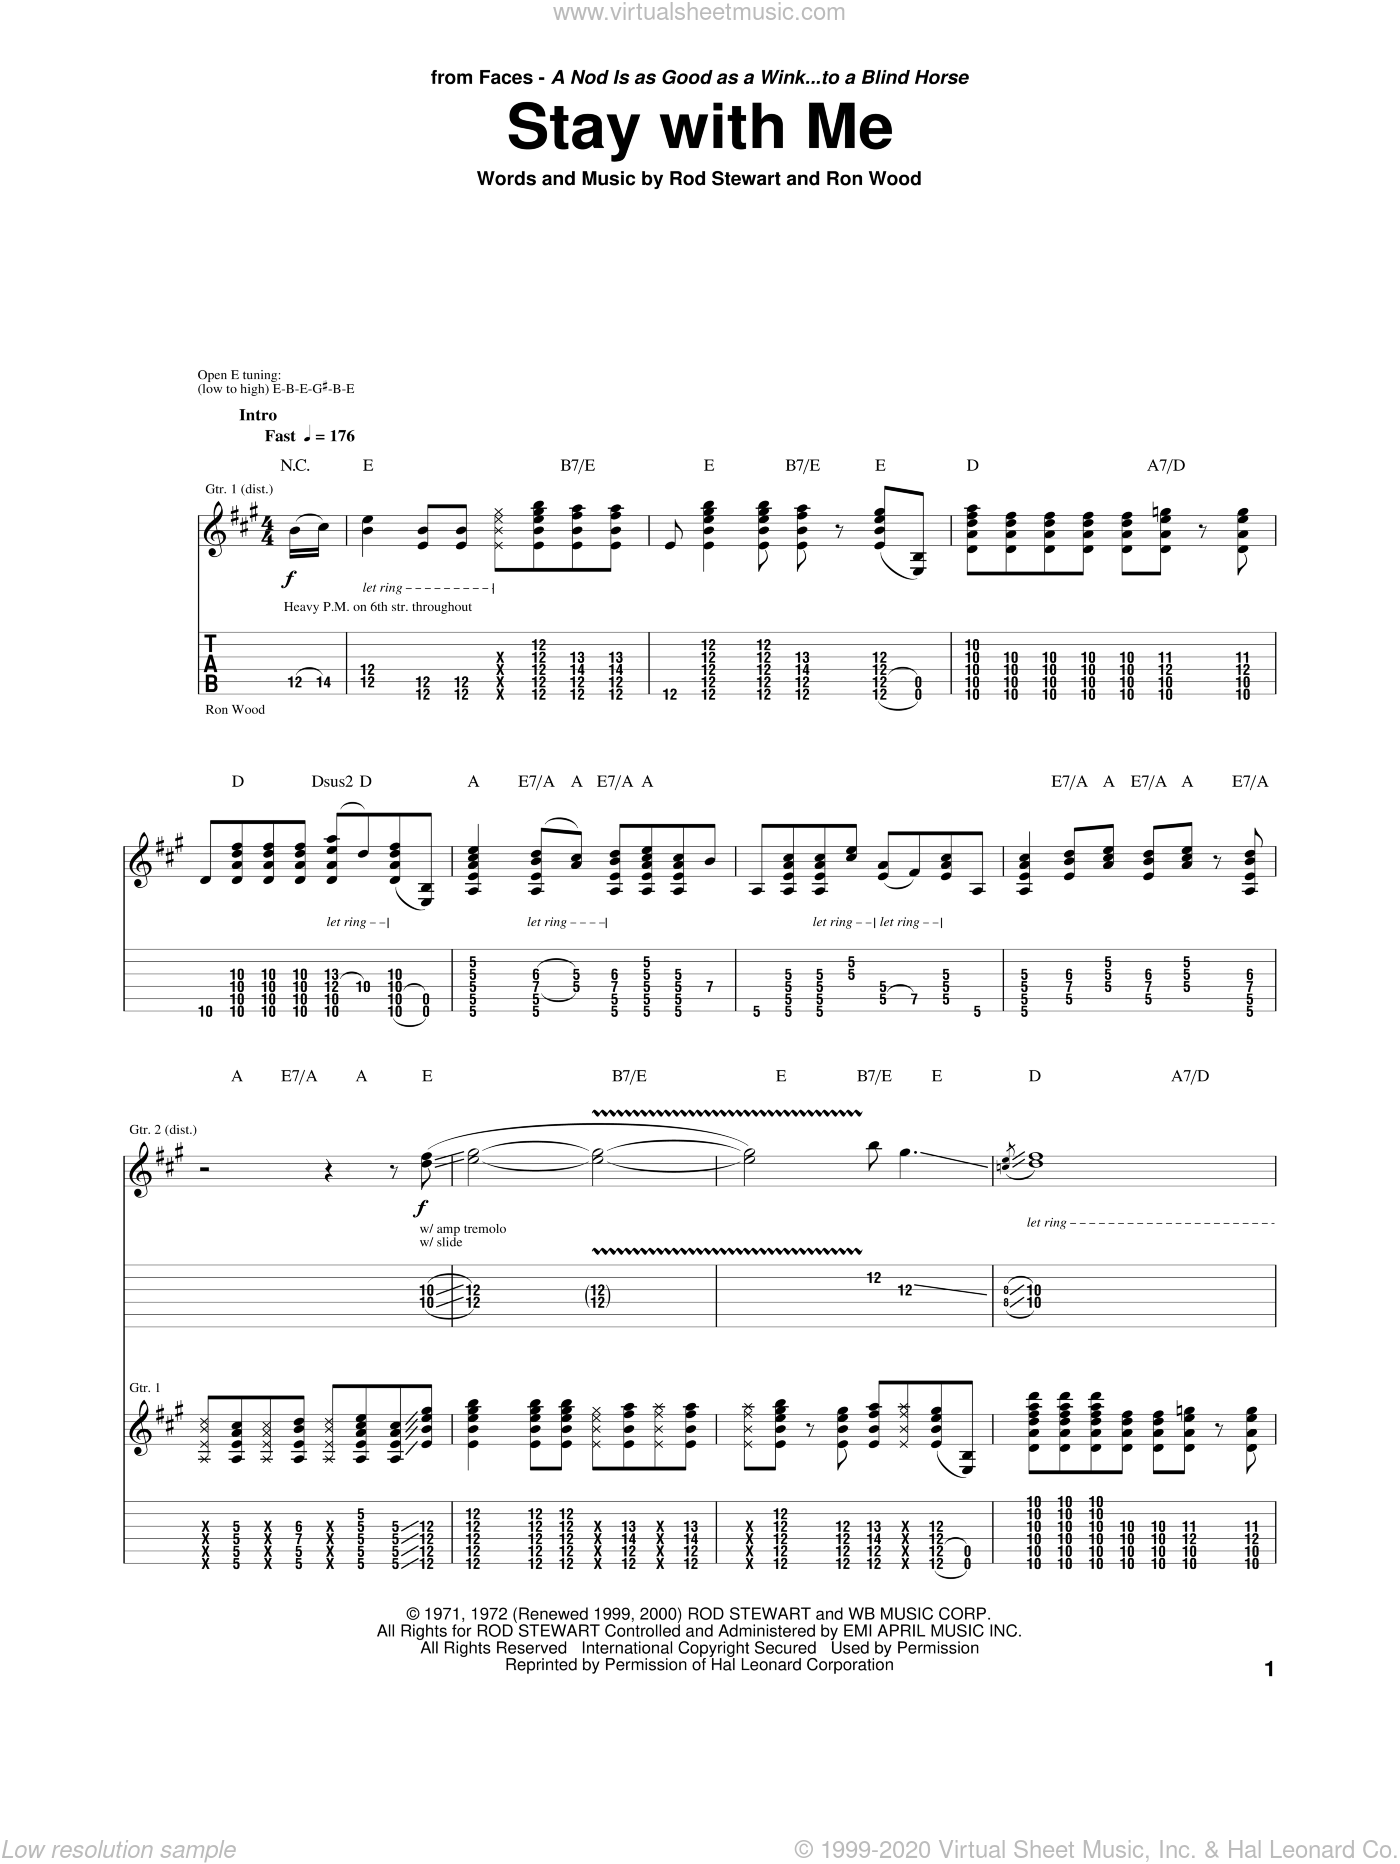 Stay With Me sheet music for guitar (tablature) by Ron Wood